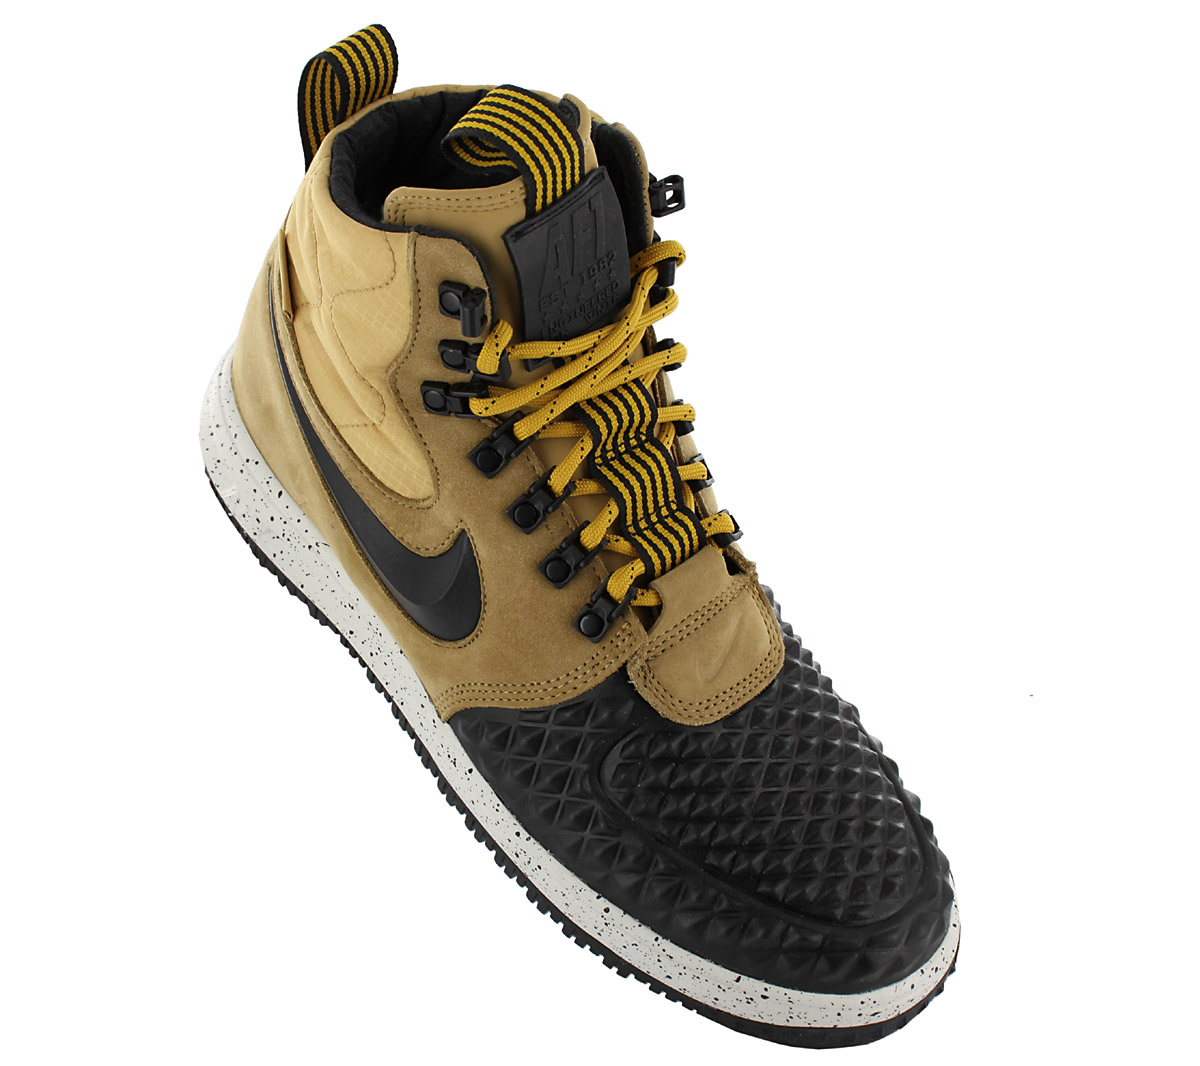 ... wholesale dealer de9f2 9c299 Nike Lunar Force 1 Duckboot 17 Shoes Mens  Sneakers Leather A ... 24a4782bf2